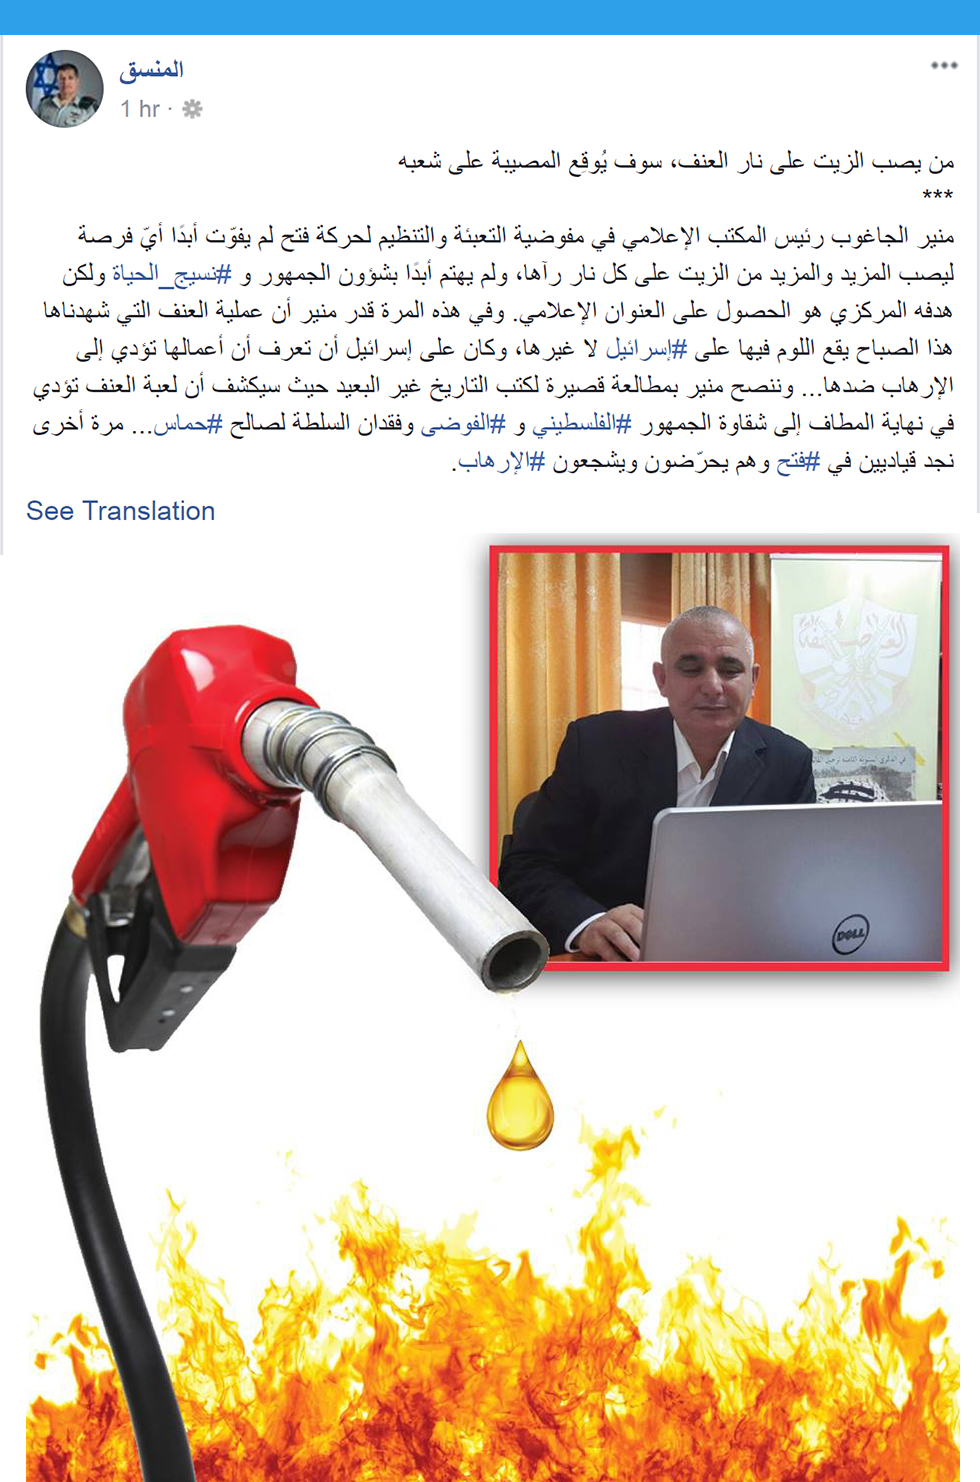 COGAT's Arabic Facebook post chastising Munir al-Jaghoub